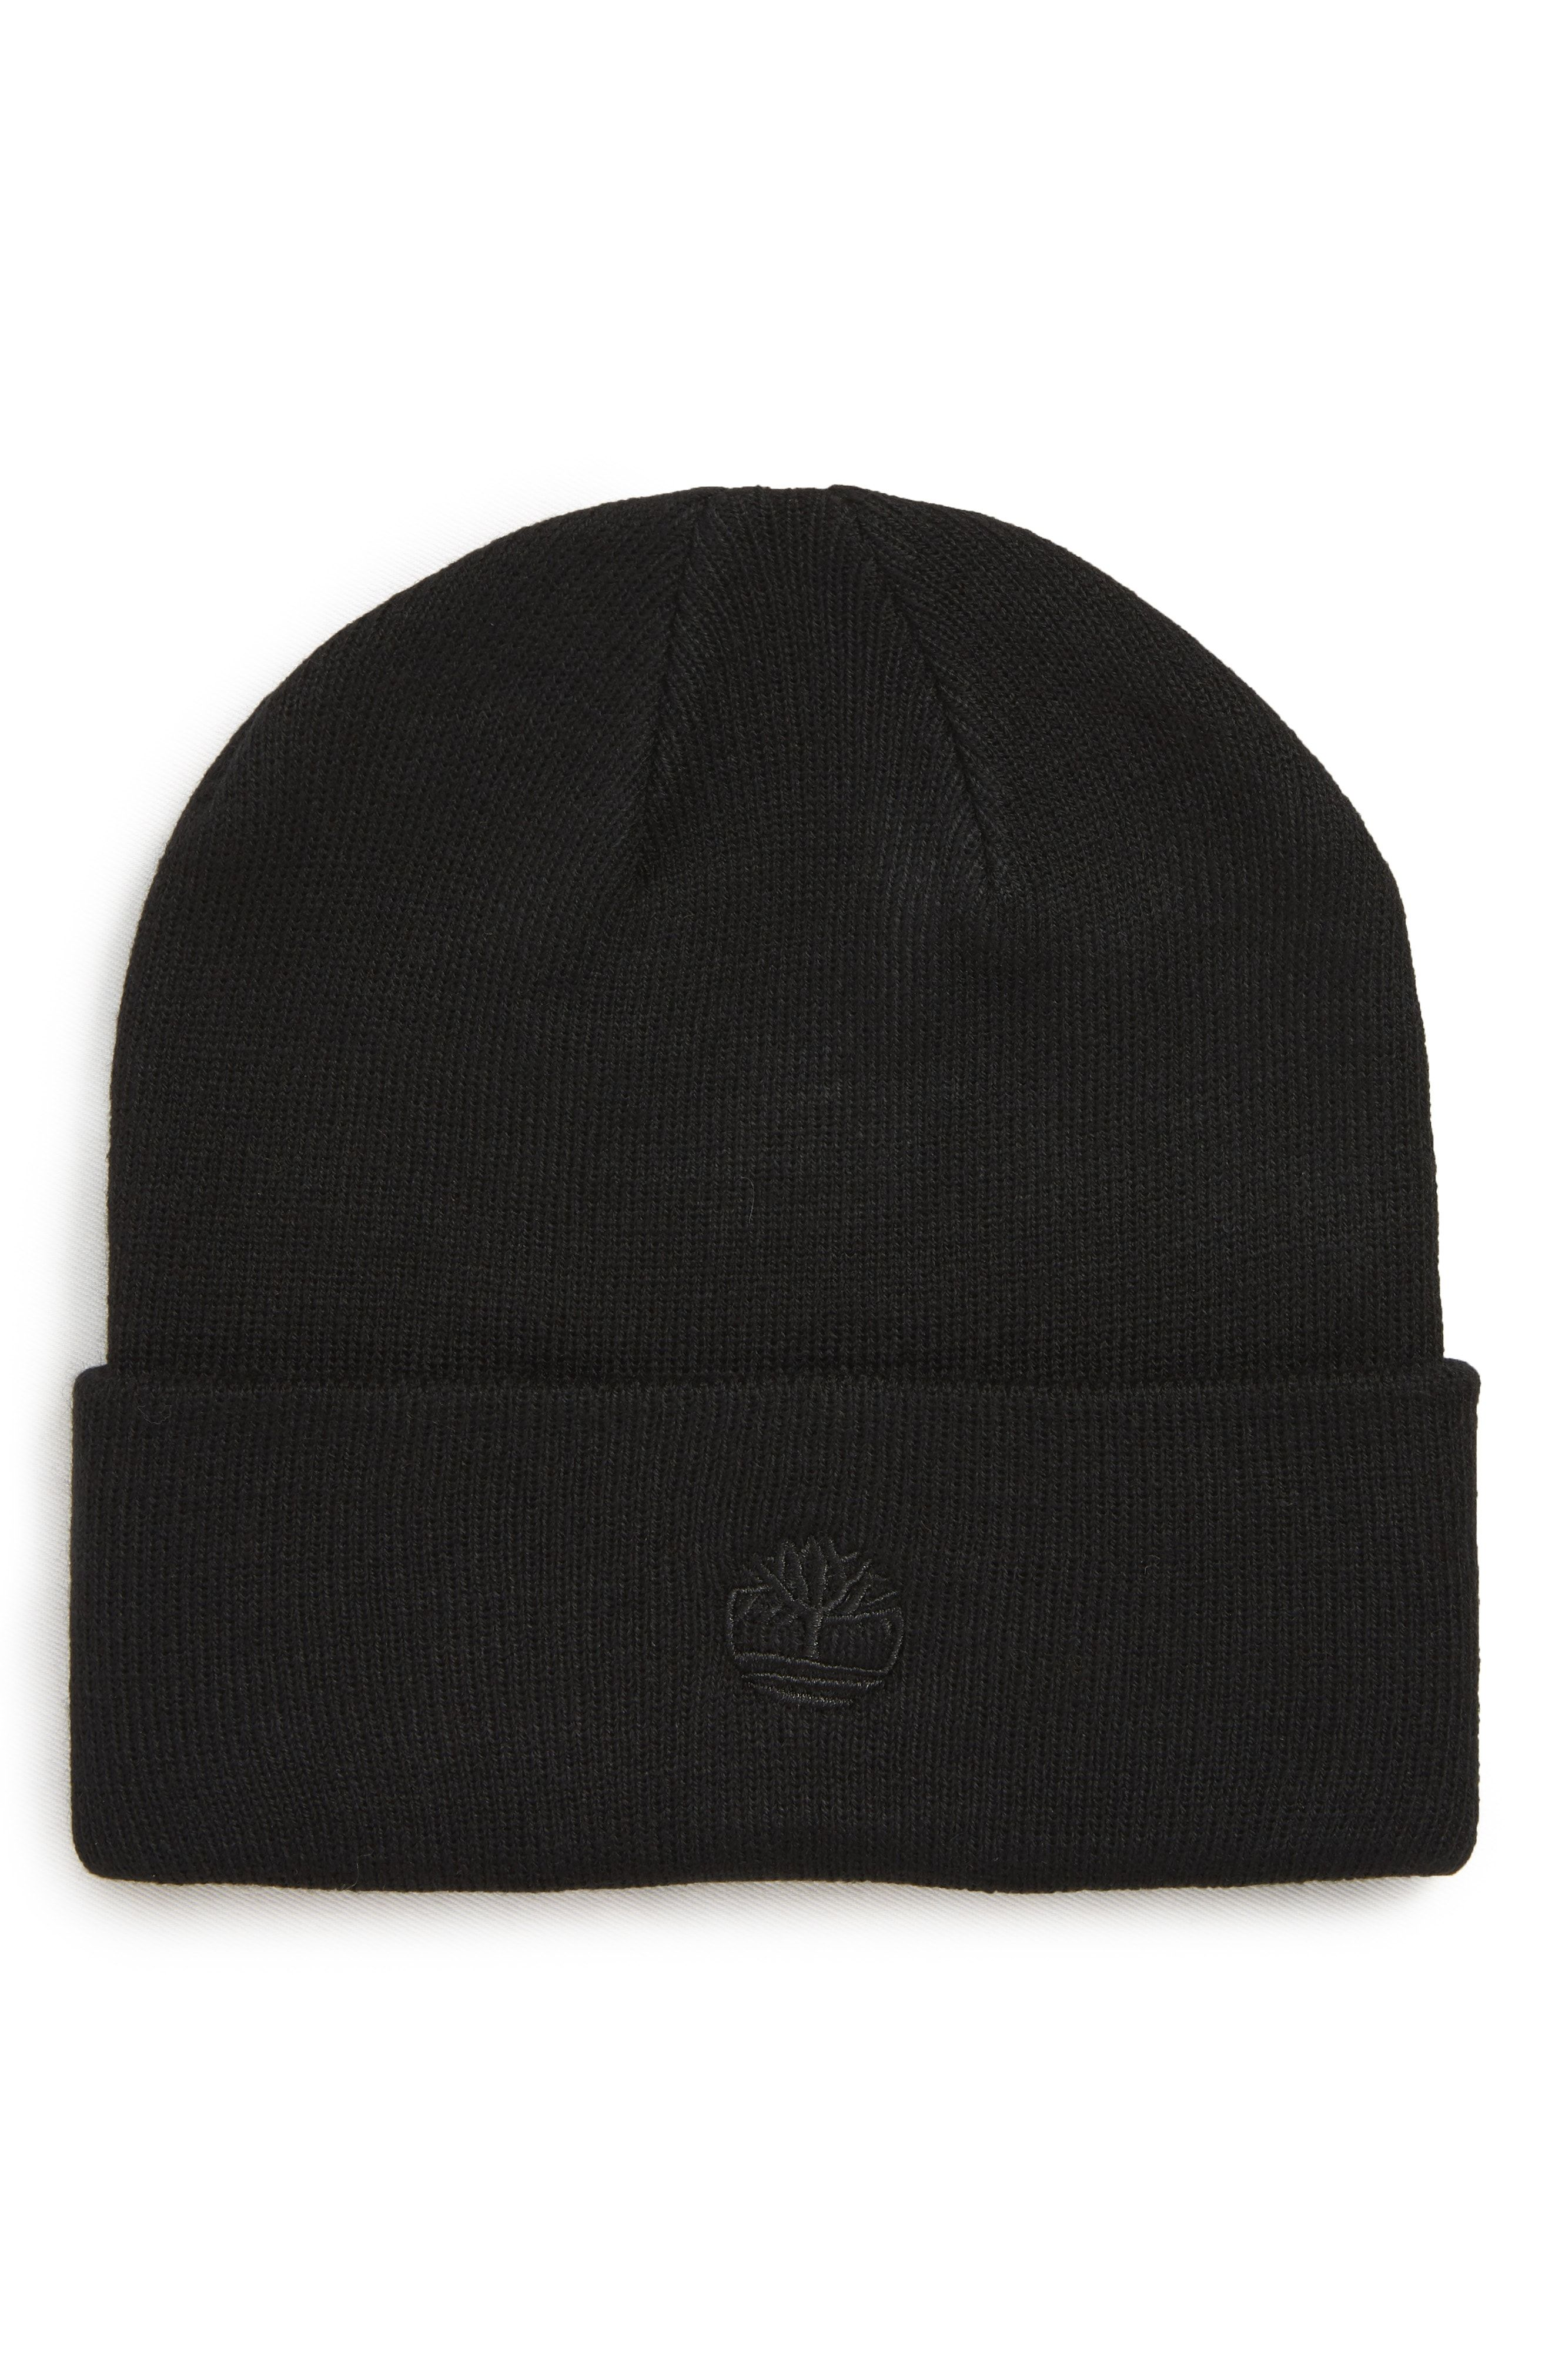 54662a777 TIMBERLAND EMBROIDERED LOGO CUFF BEANIE - BLACK. #timberland ...